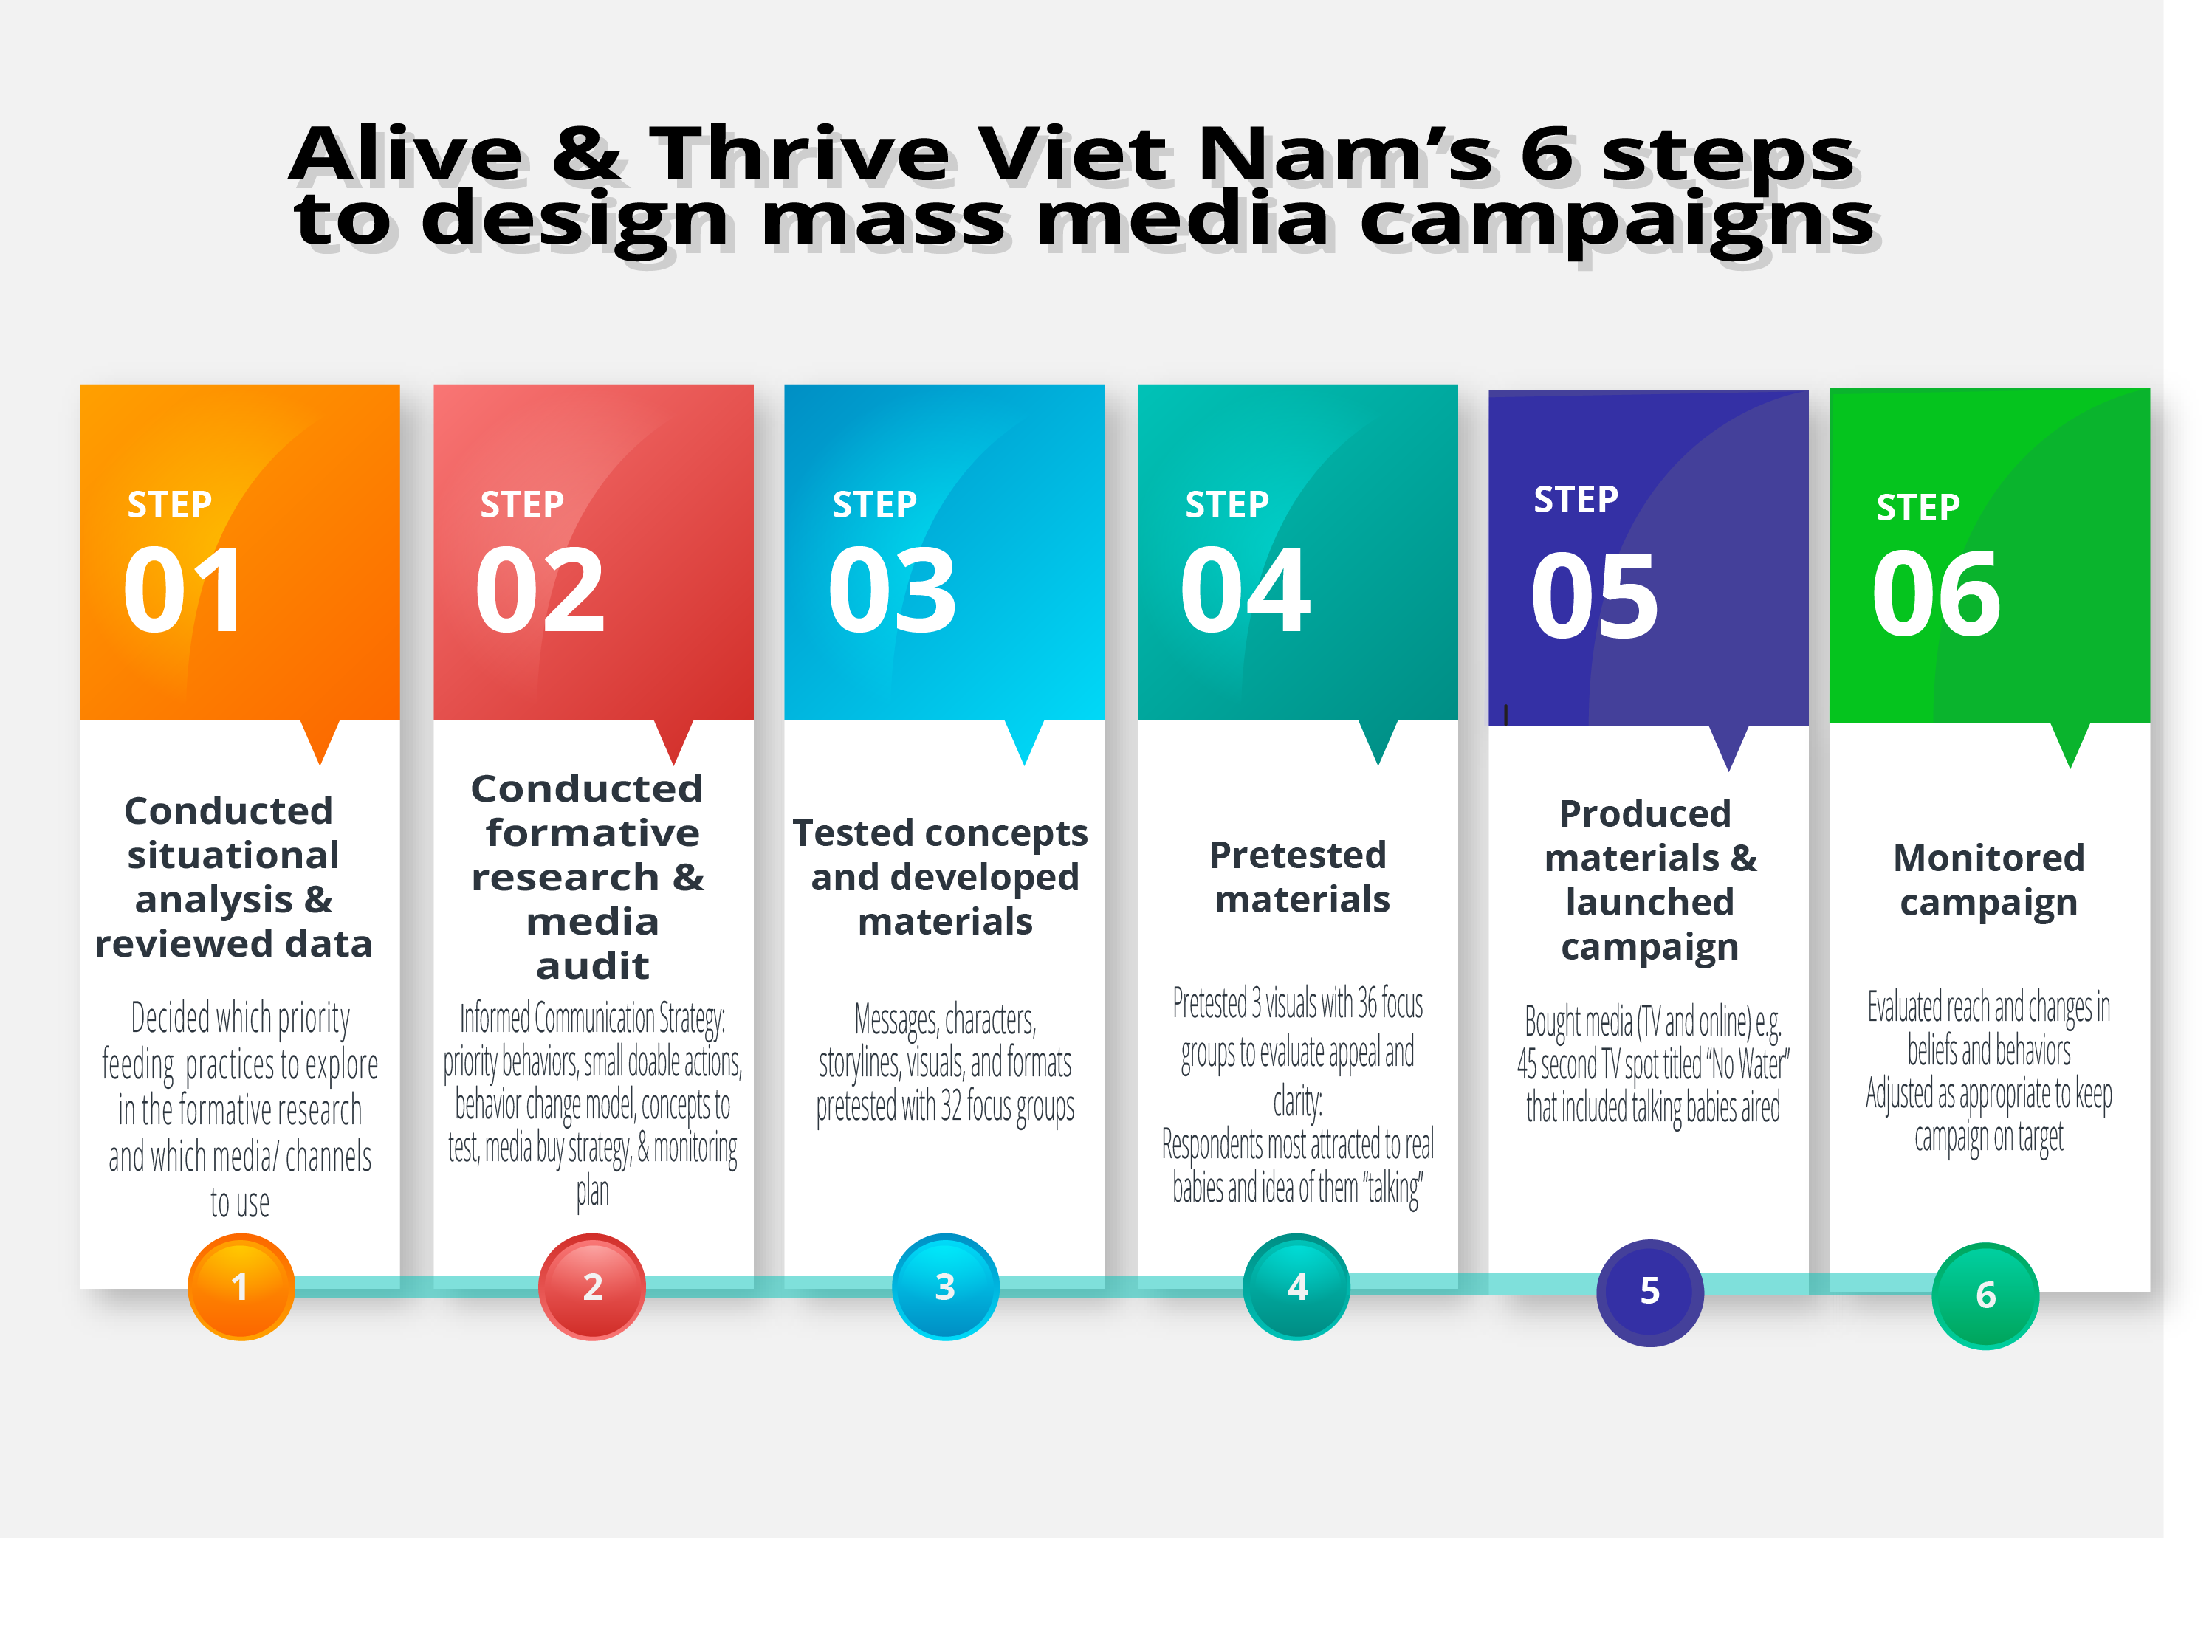 Alive and Thrive's 6 steps